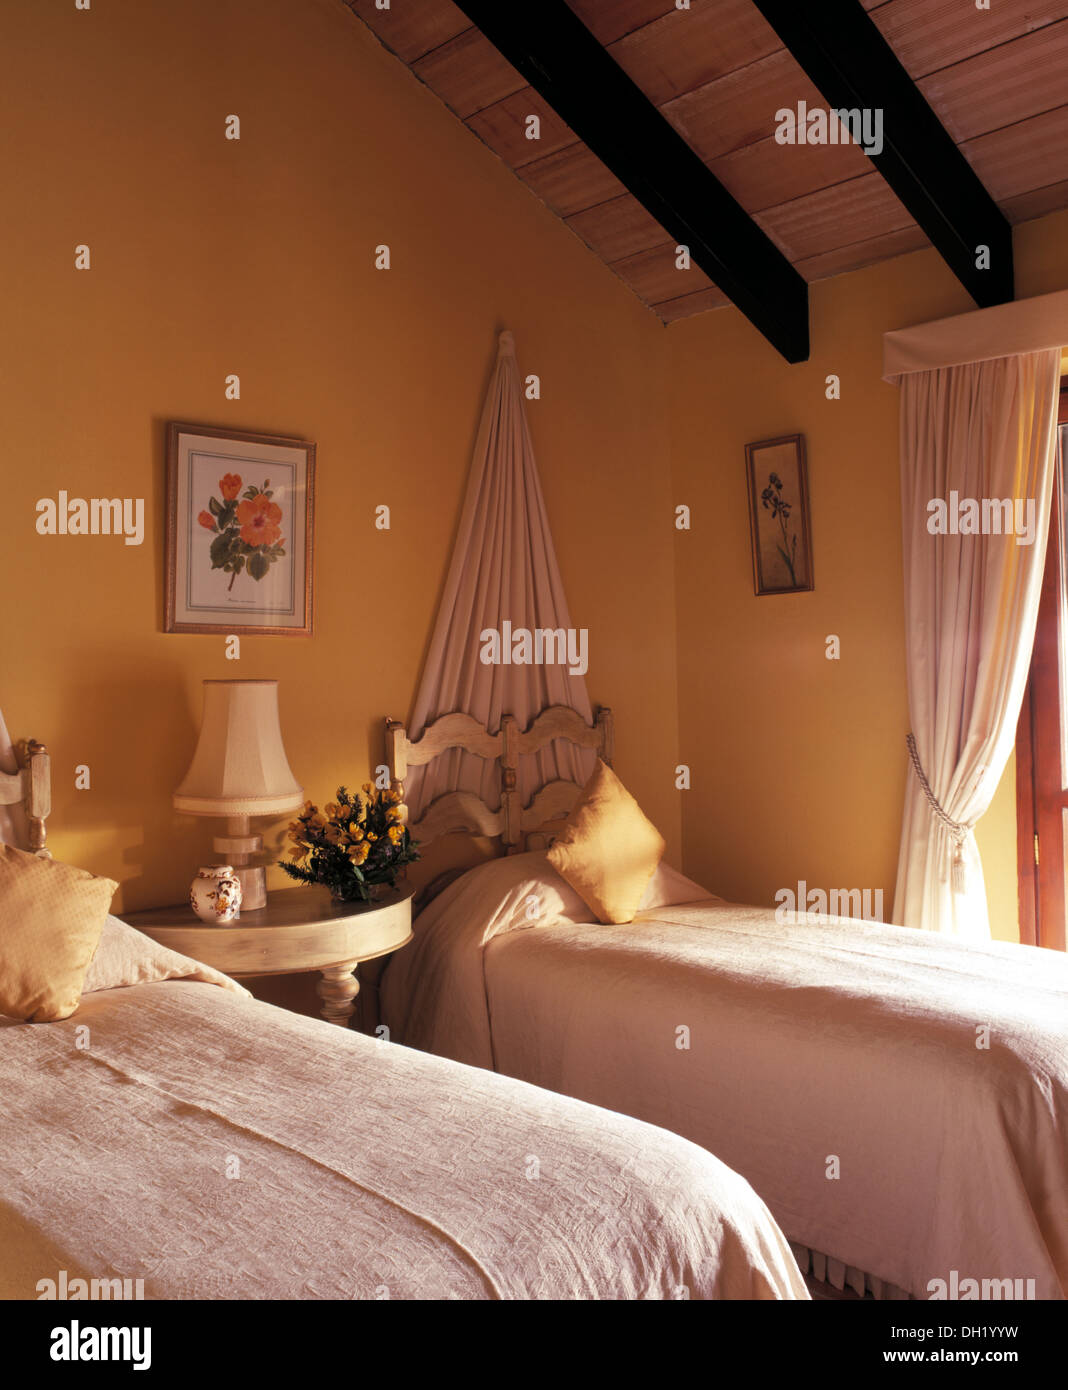 Picture of: White Linen Covers On Twin Beds With Simple Carved Wood Headboards In Stock Photo Alamy